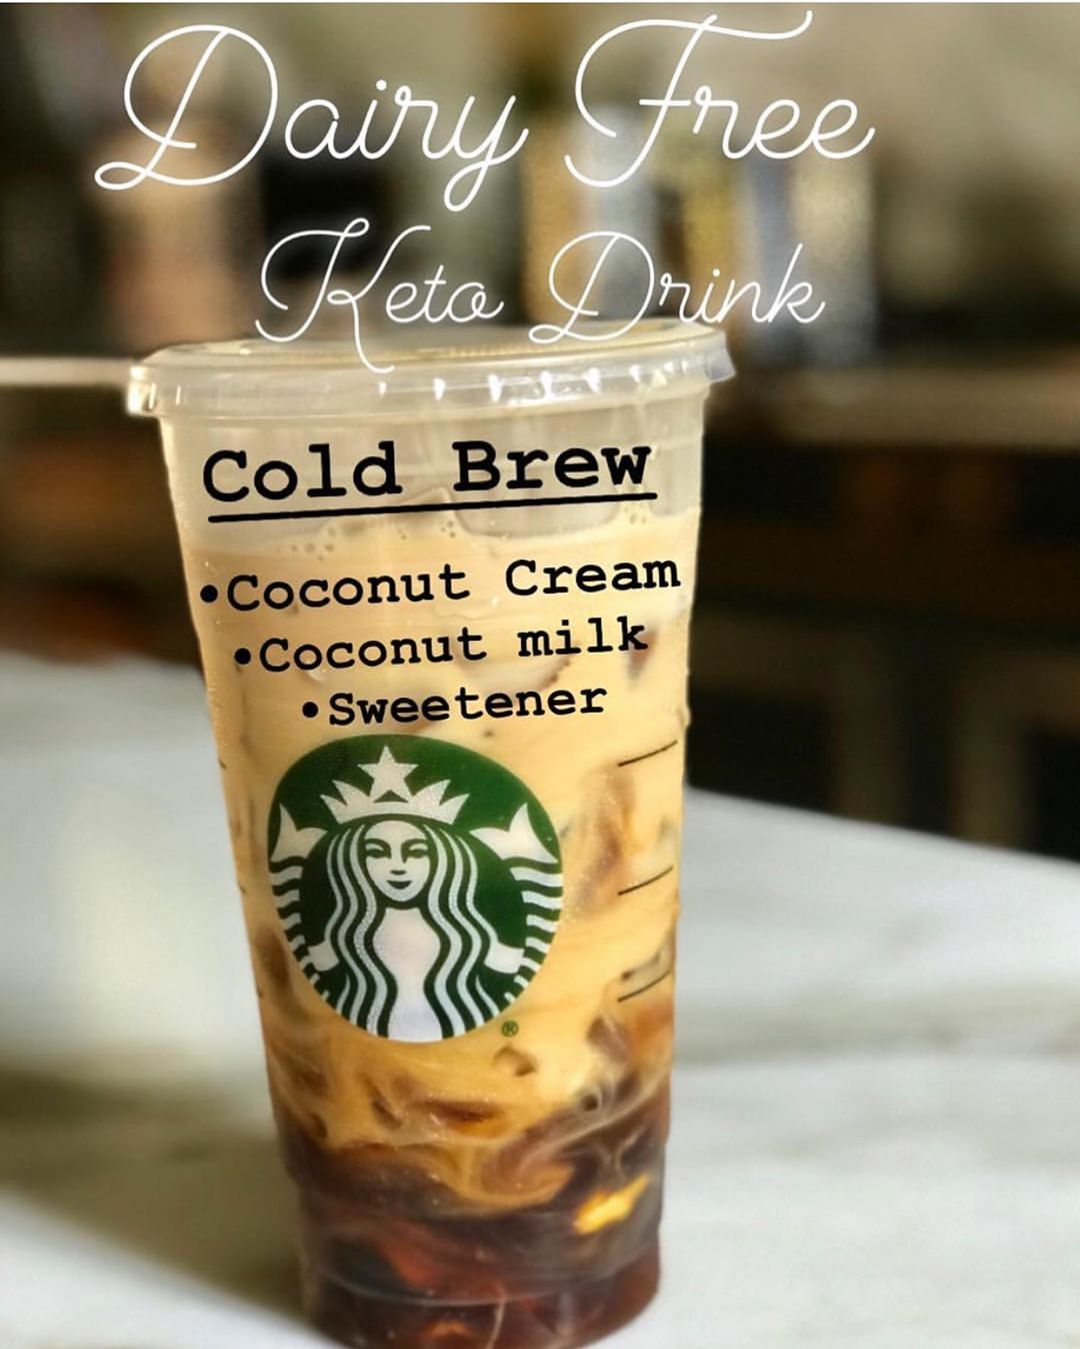 Dairy Free Cold Brew Tag A Friend Who Would Love This Drink How Many Of You A In 2020 Vegan Starbucks Drinks Dairy Free Starbucks Drinks Dairy Free Starbucks